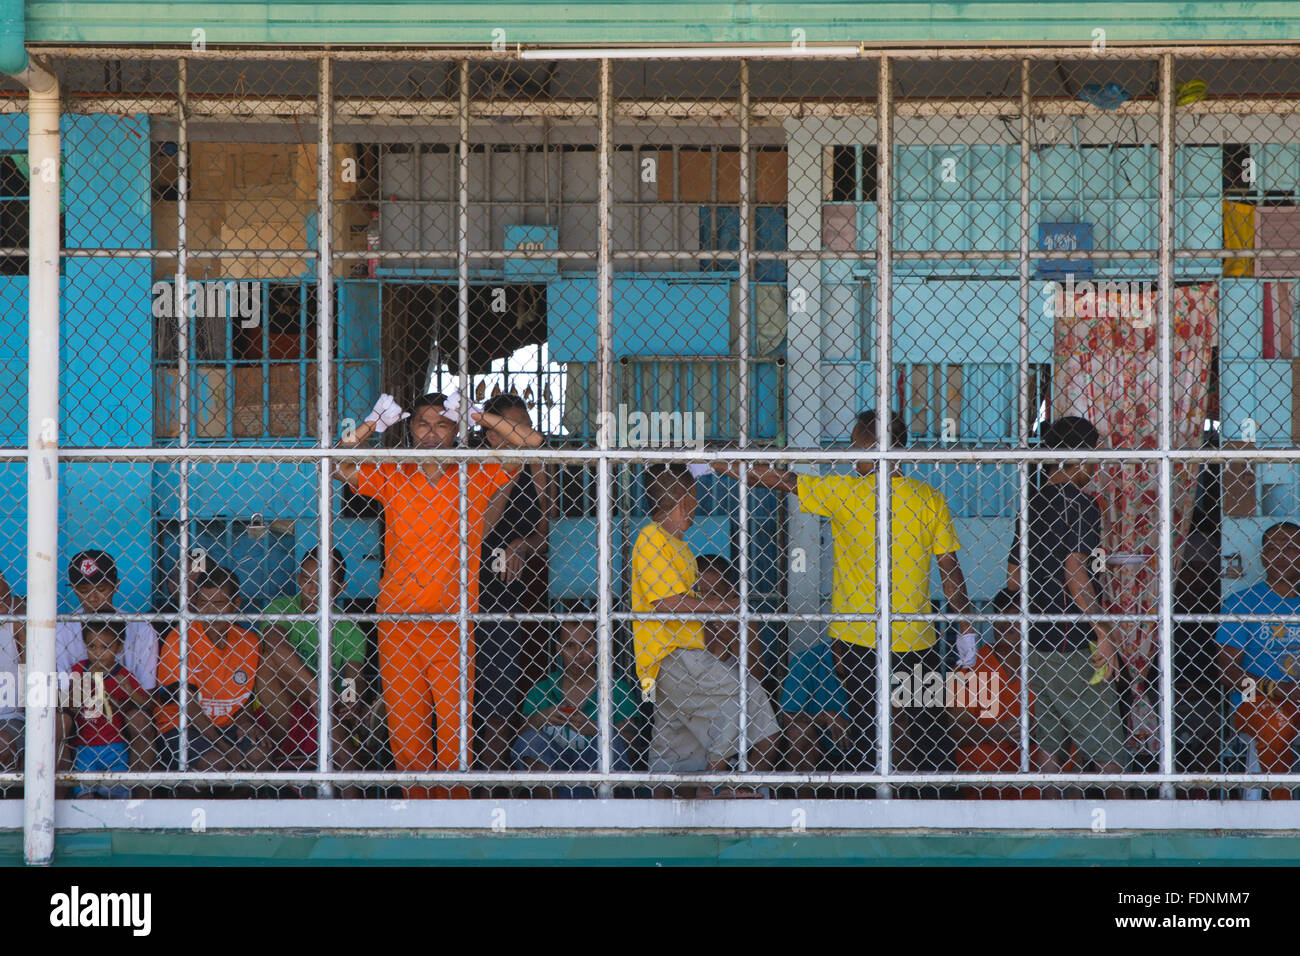 Inmates of the Cebu Provincial Detention and Rehabilitation Center, Cebu City,Philippines - Stock Image